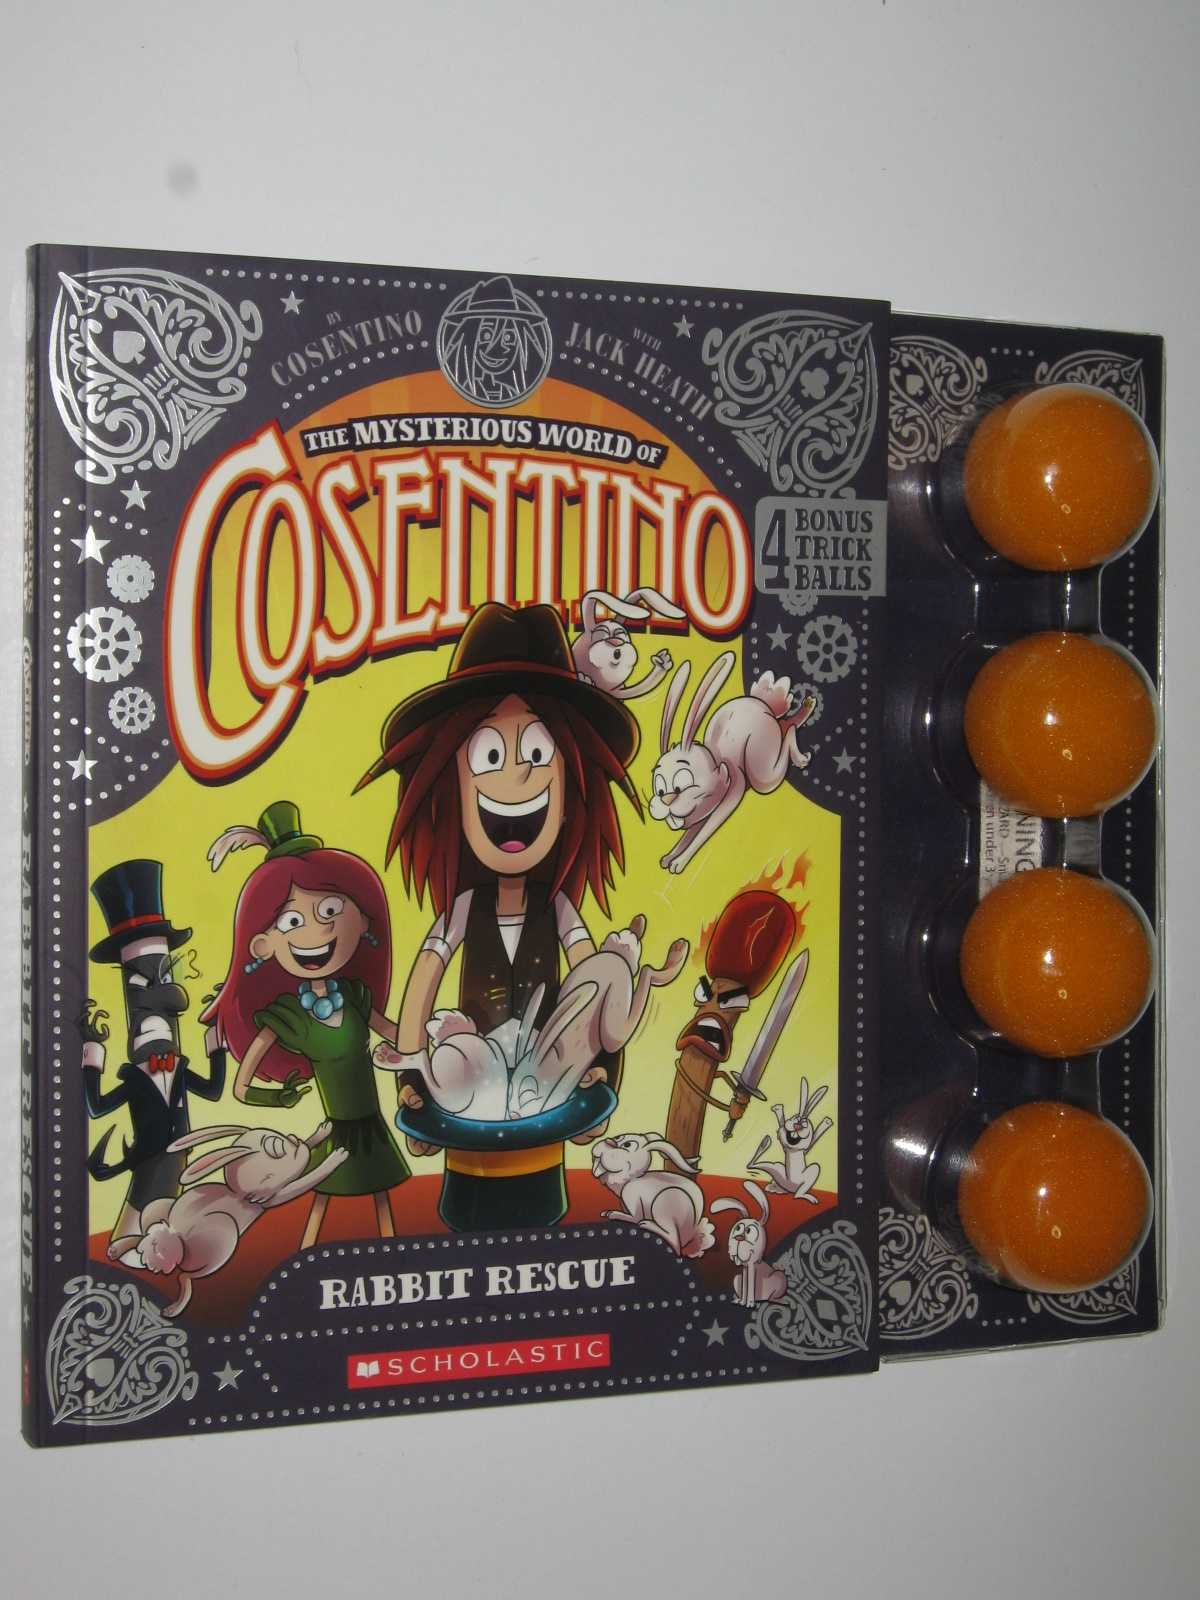 Image for Rabbit Rescue - The Mysterious World of Cosentino Series